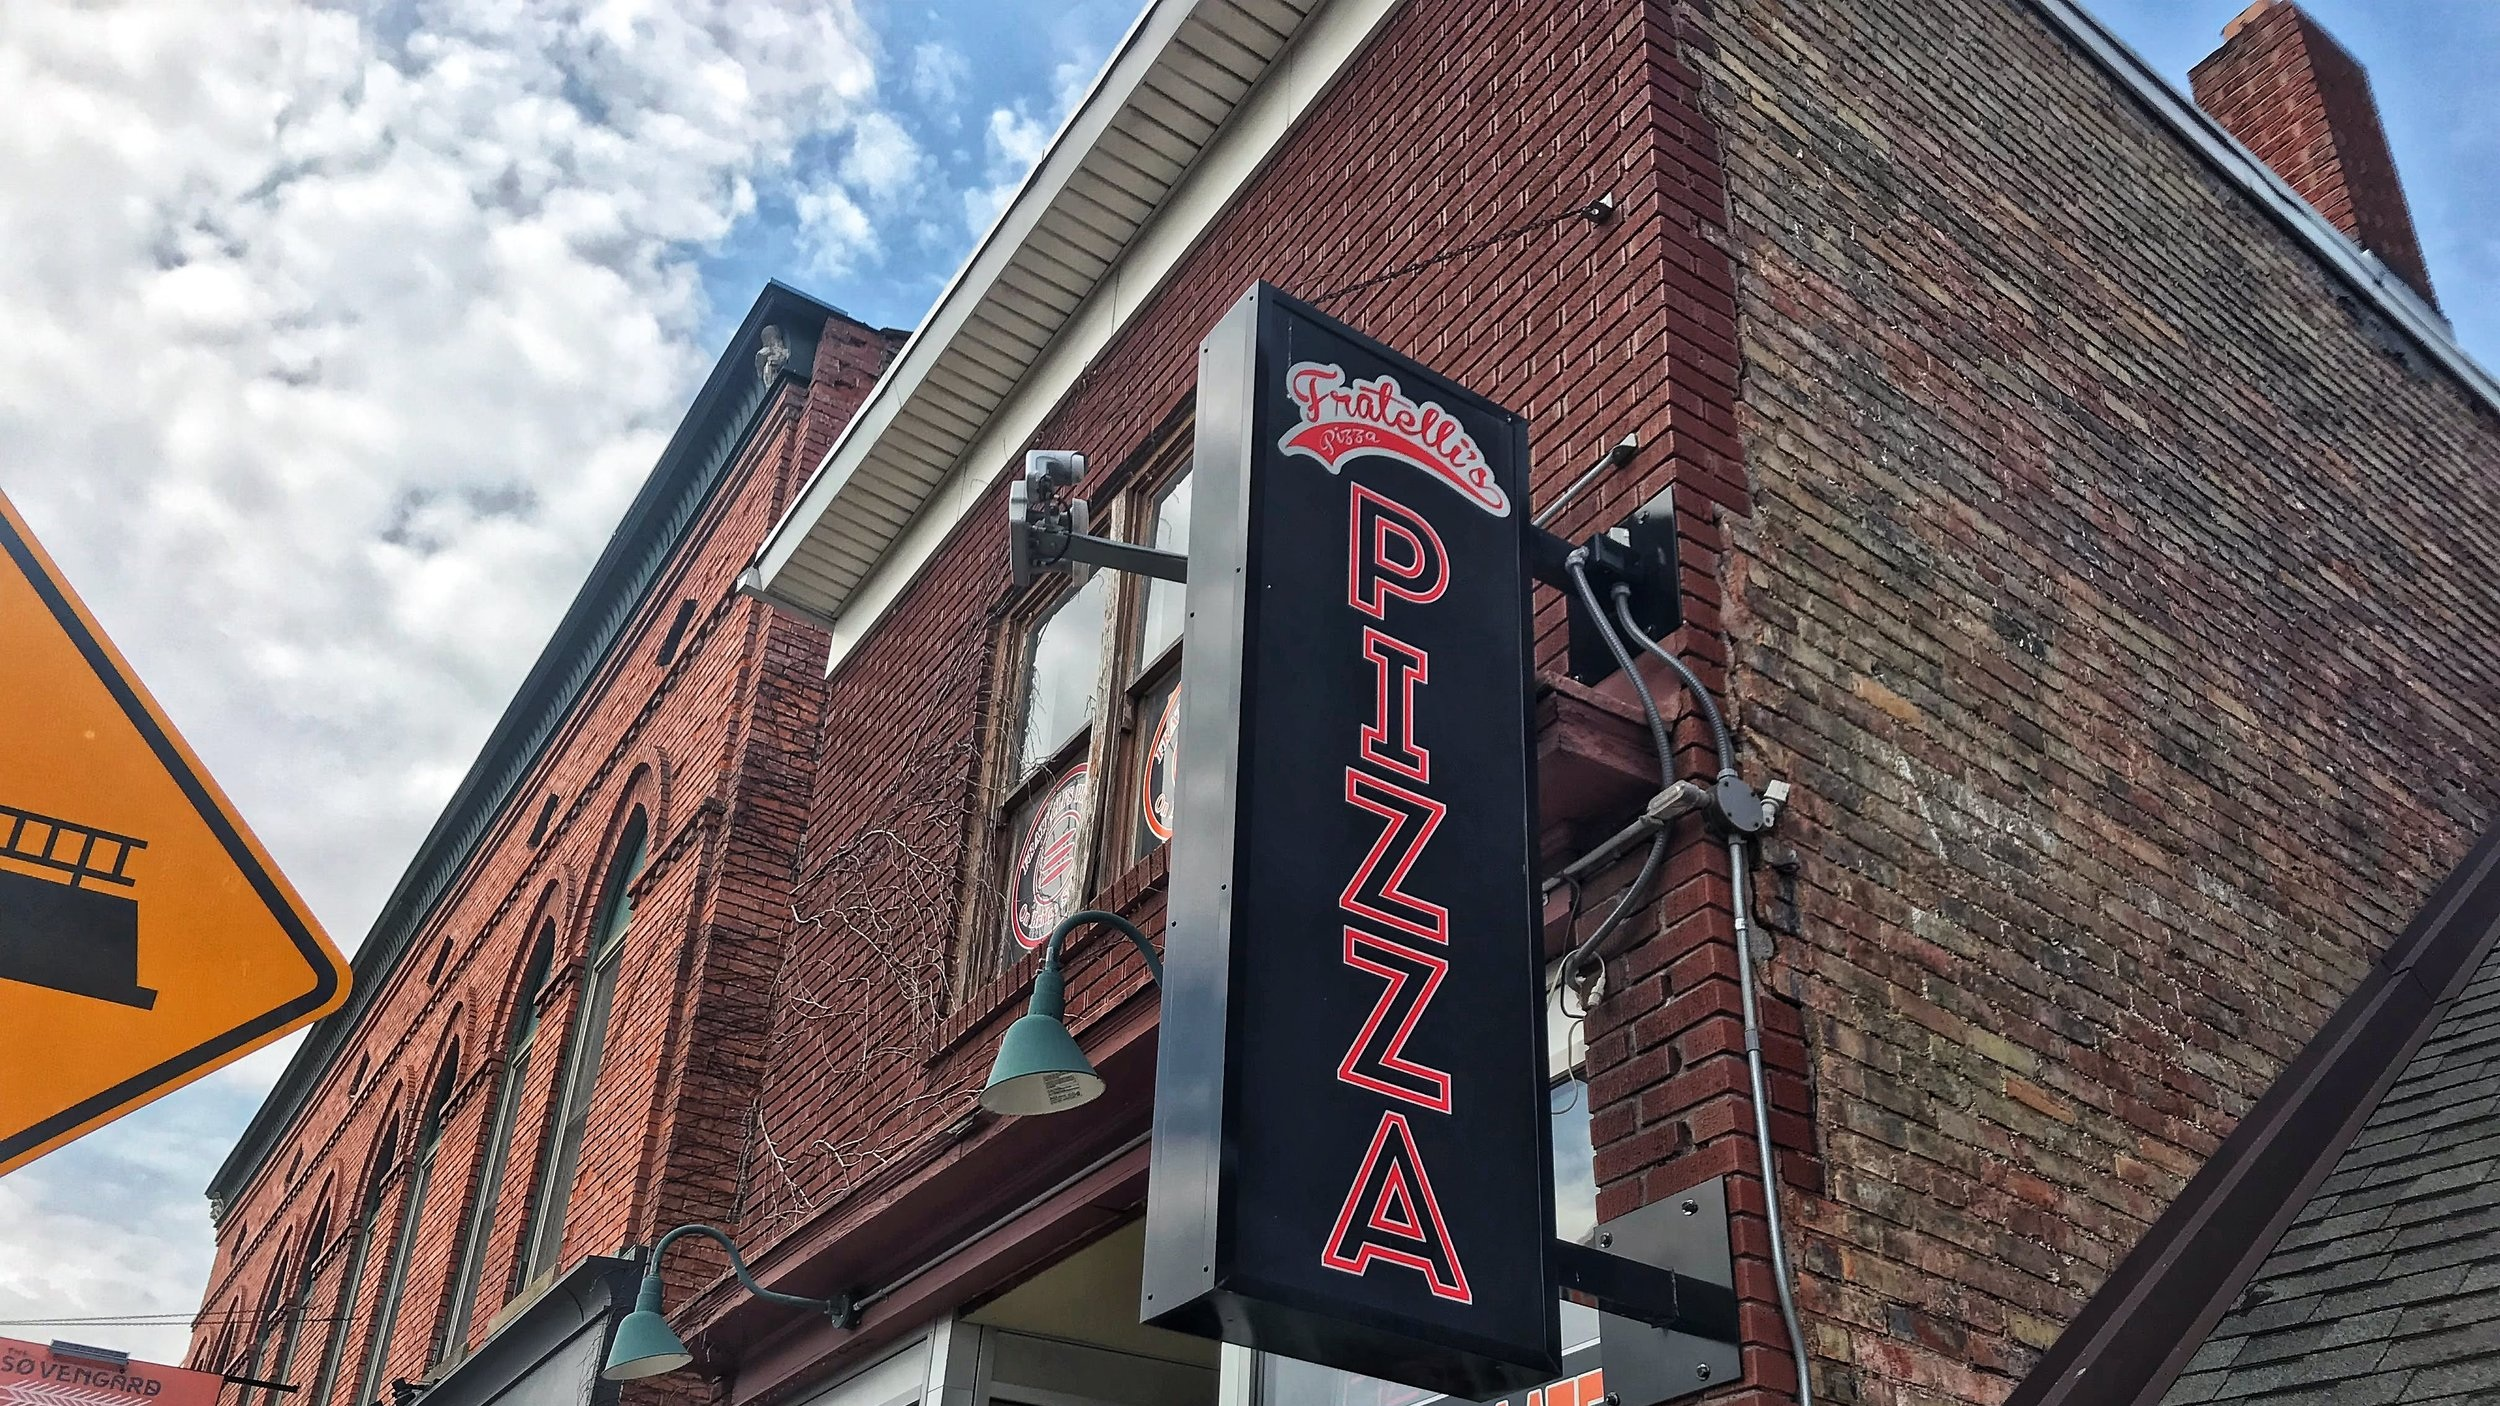 Fratelli's - our pizza joint